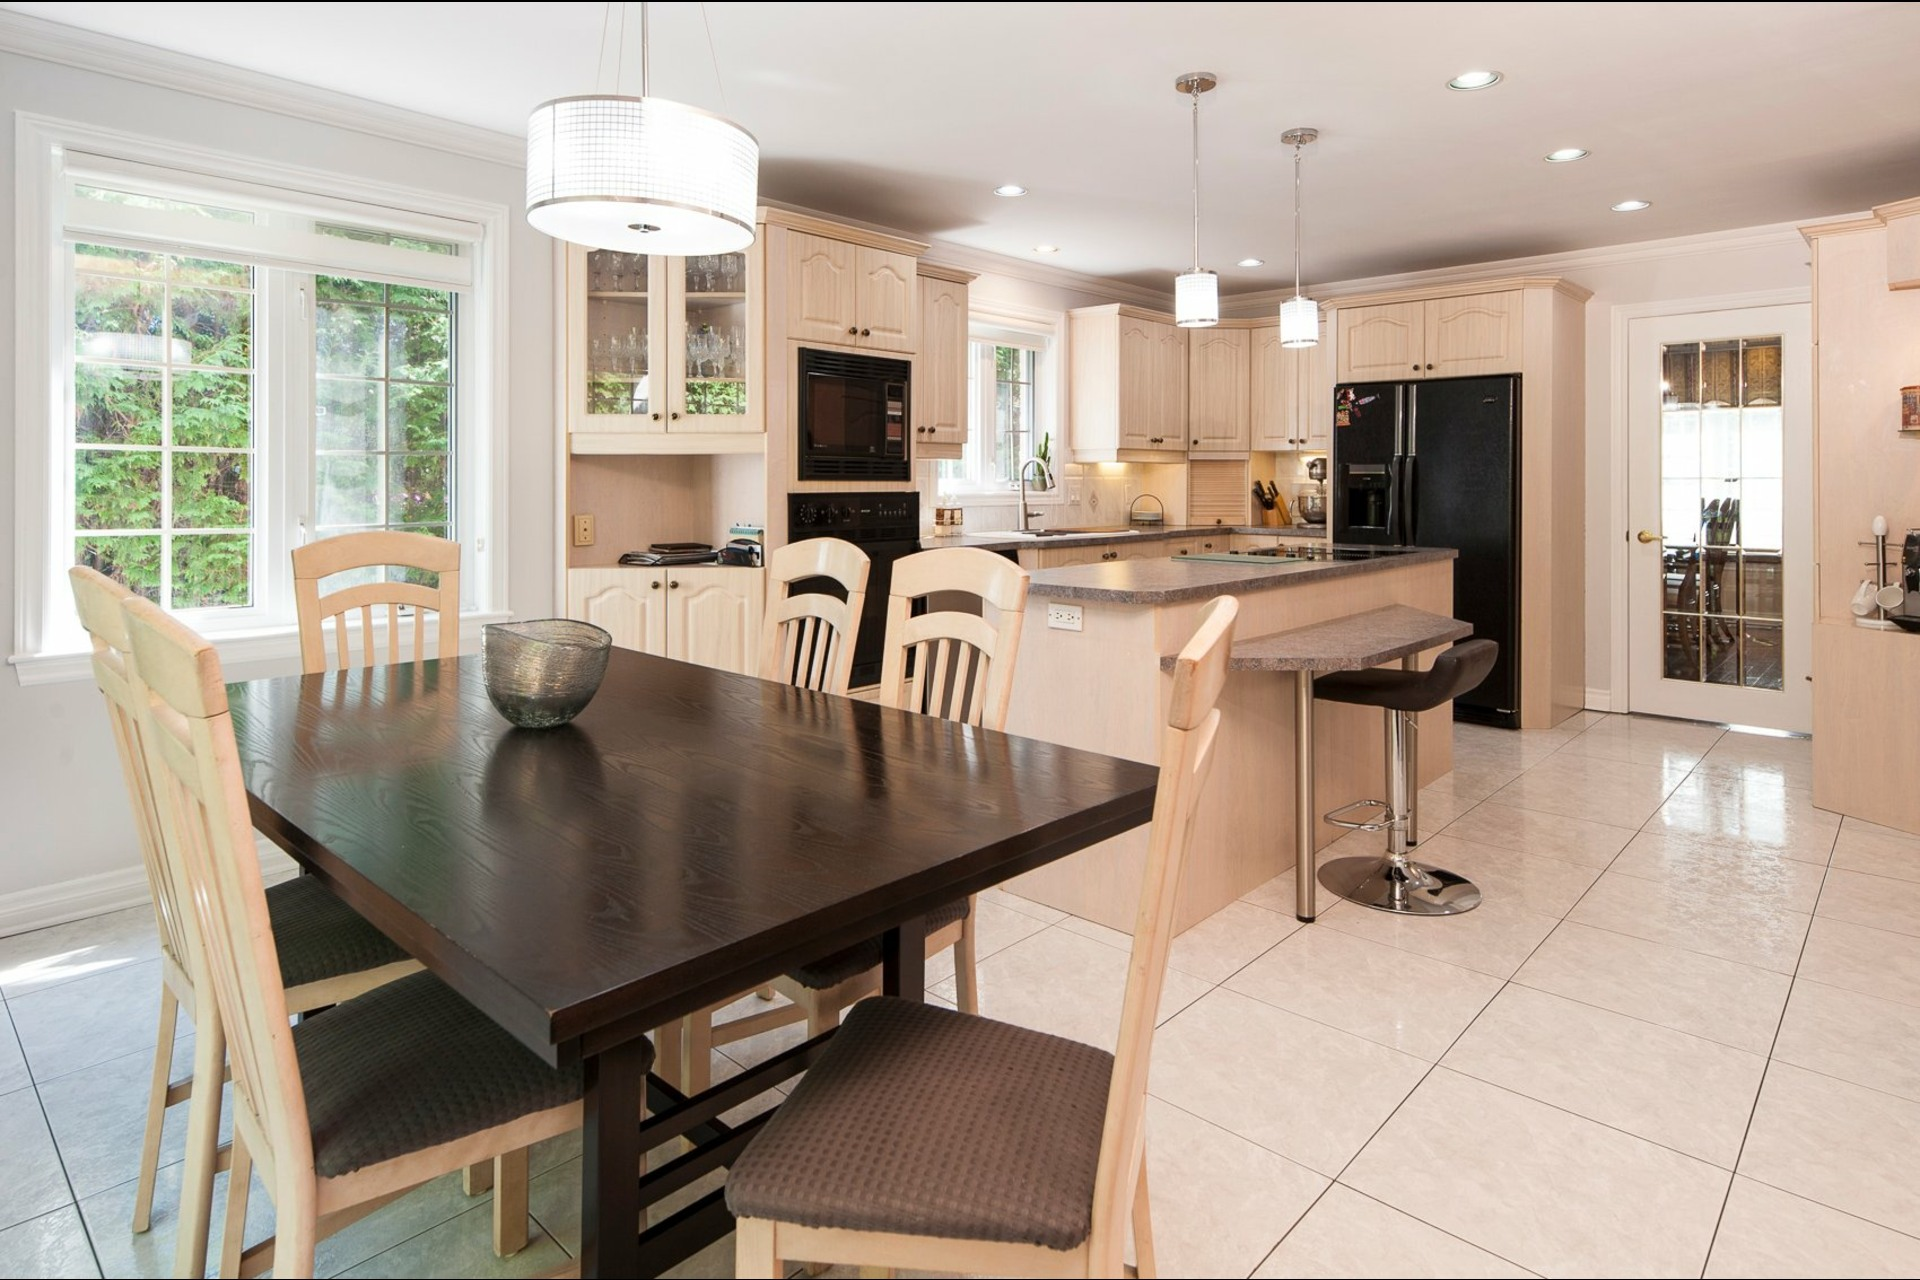 image 11 - House For sale Beaconsfield